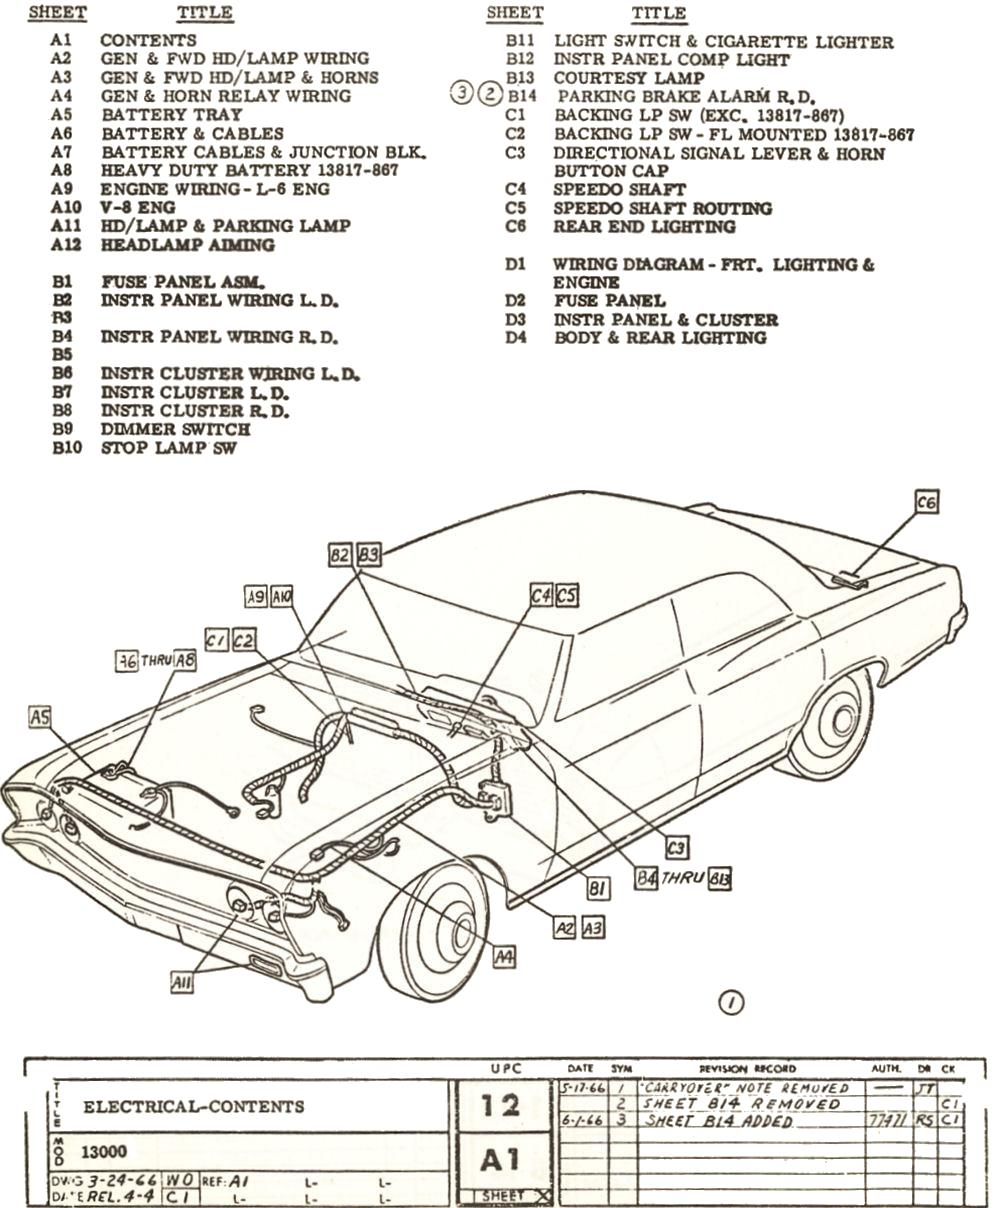 1967 CHEVELLE FACTORY ASSEMBLY INSTRUCTION MANUAL